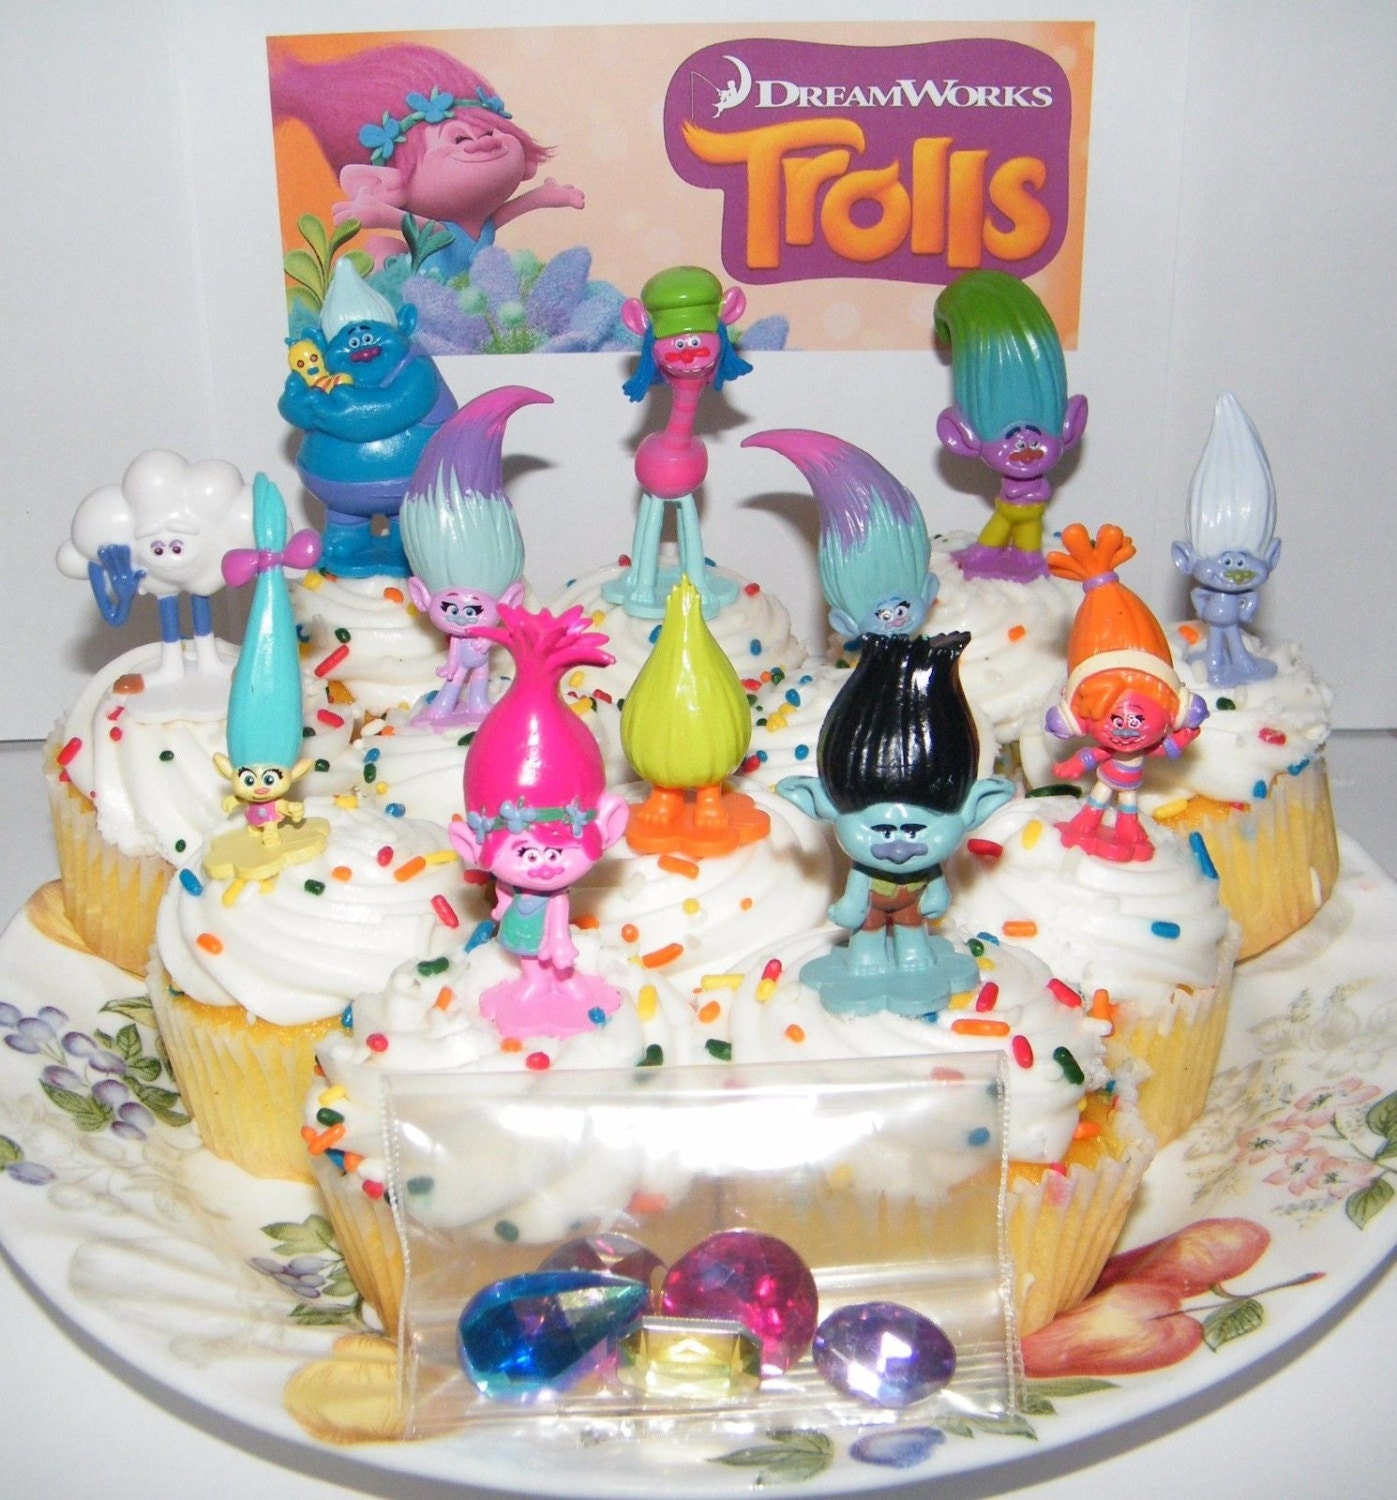 Cake Decoration Trolls : 12 Dreamworks Trolls Troll Cupcake Cake Toppers Set Birthday